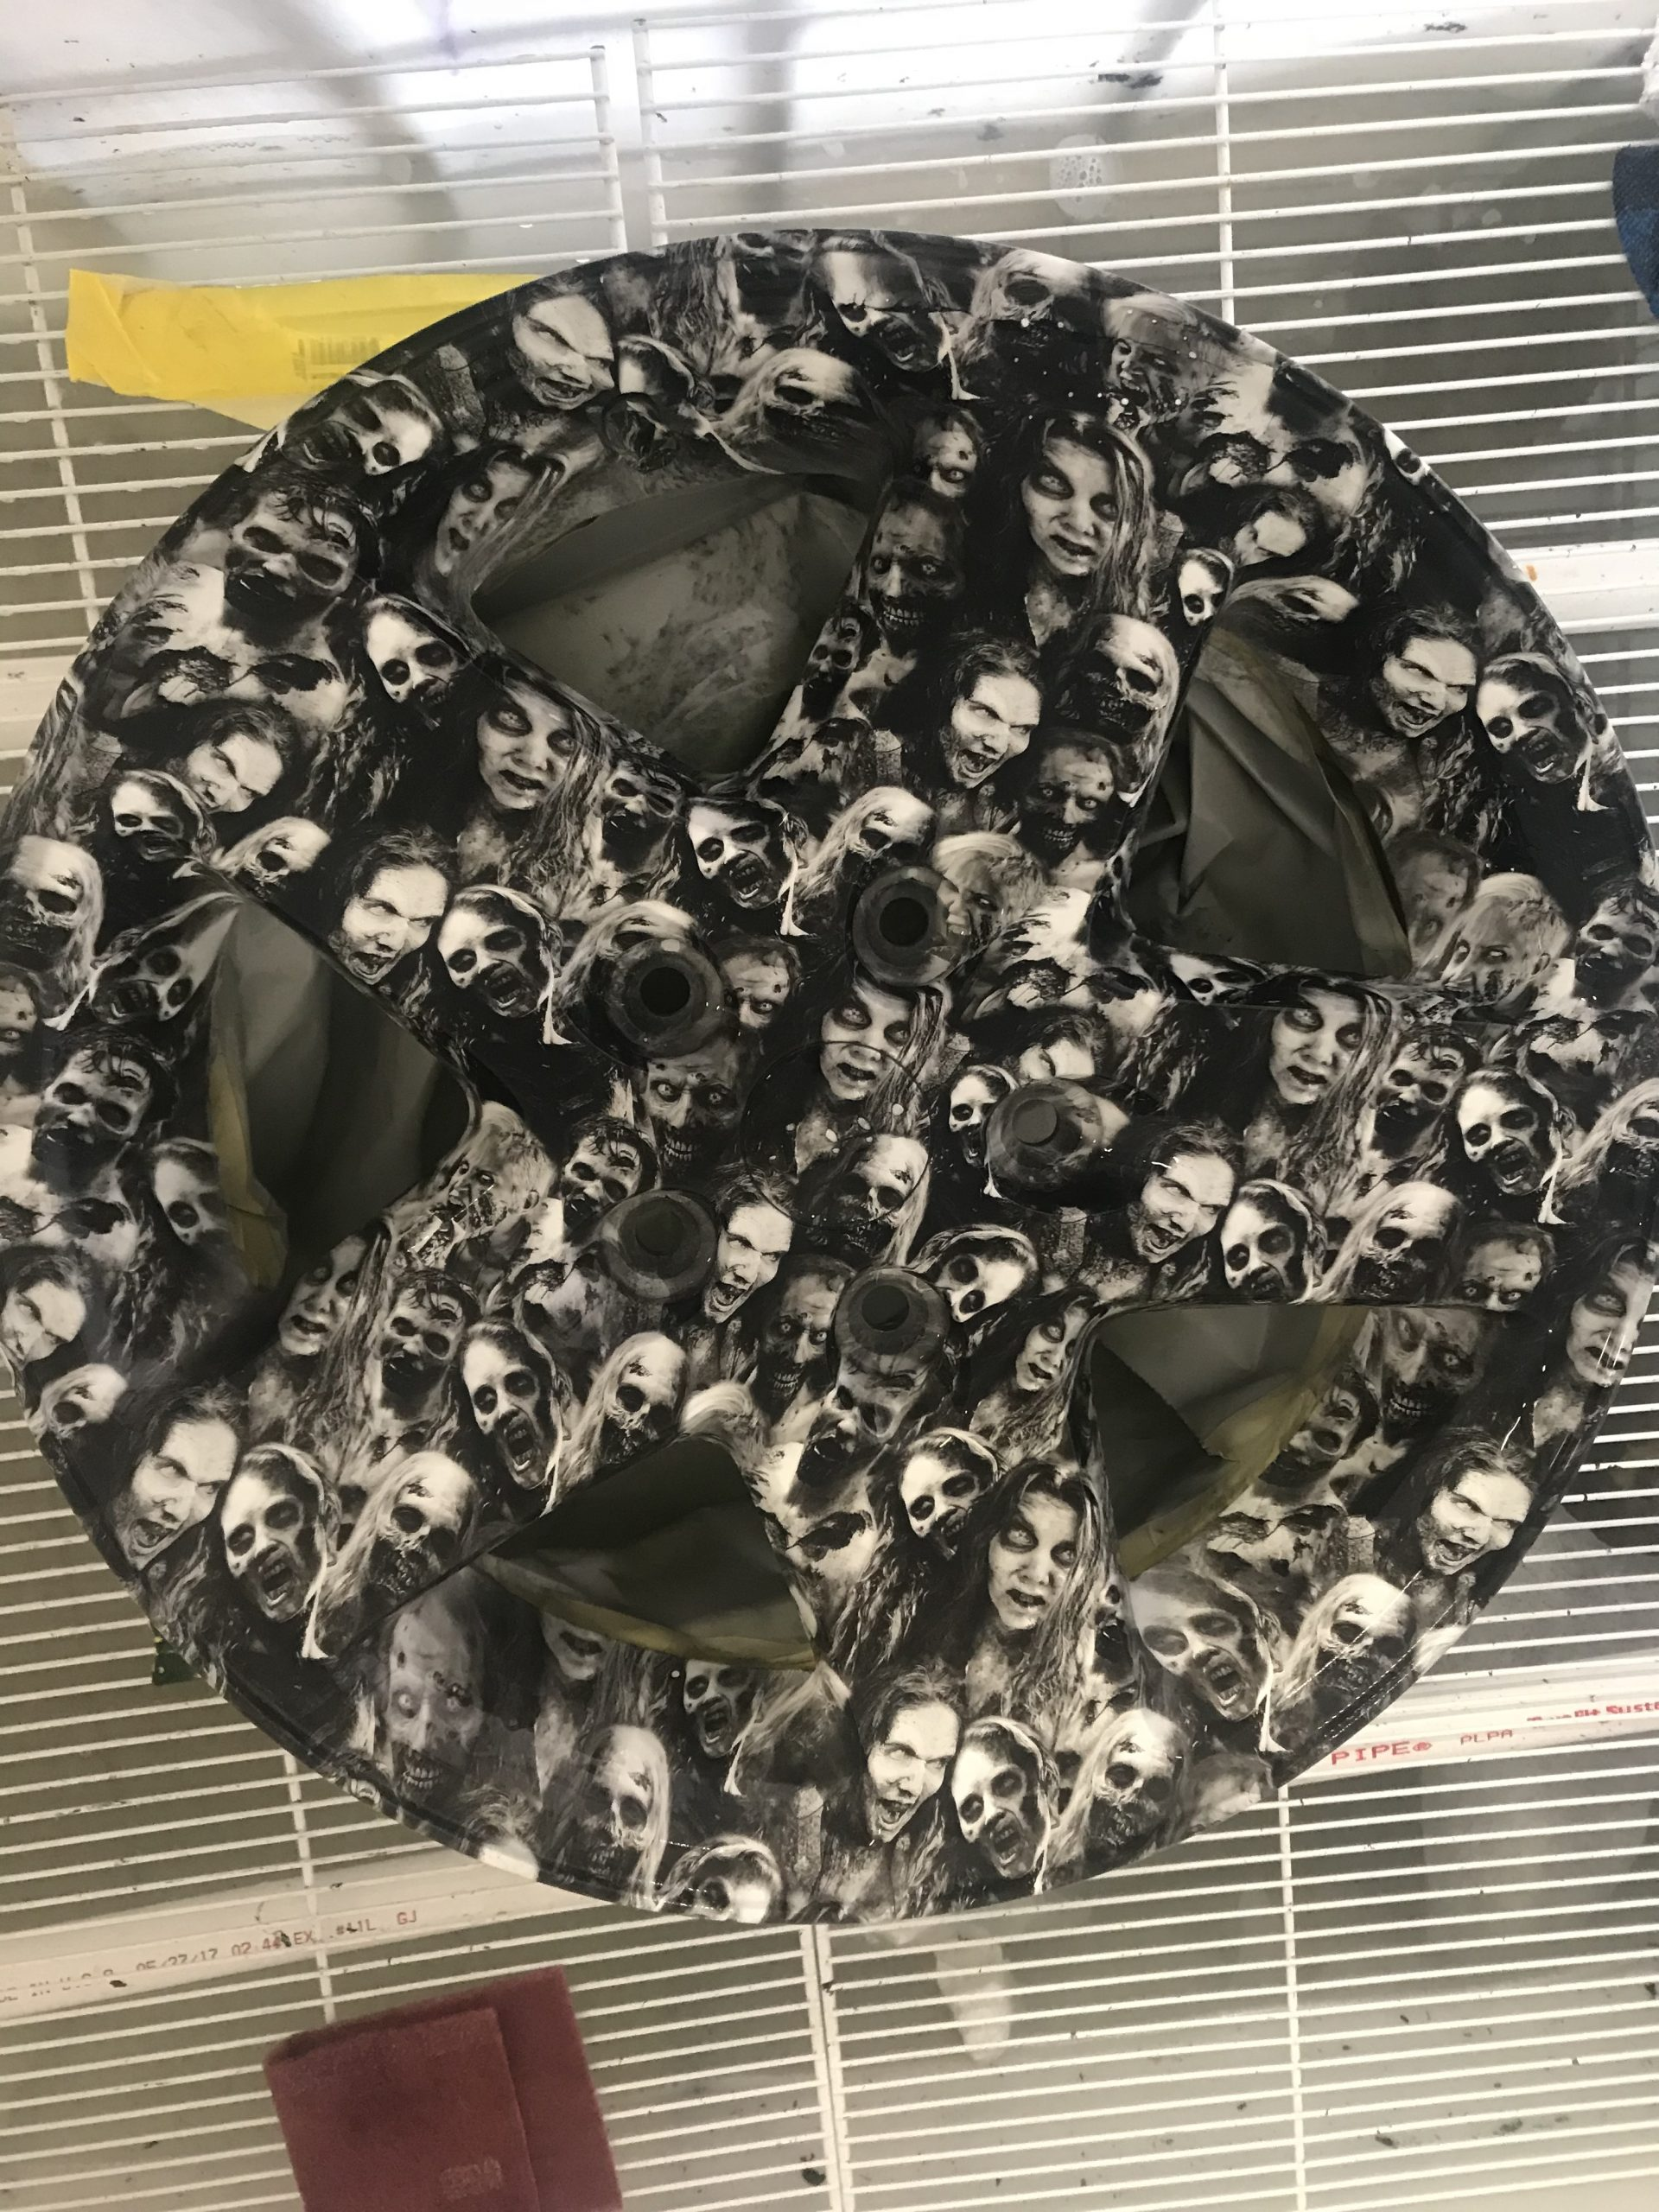 Hydrographics film pricing dipped with zombie film on rim